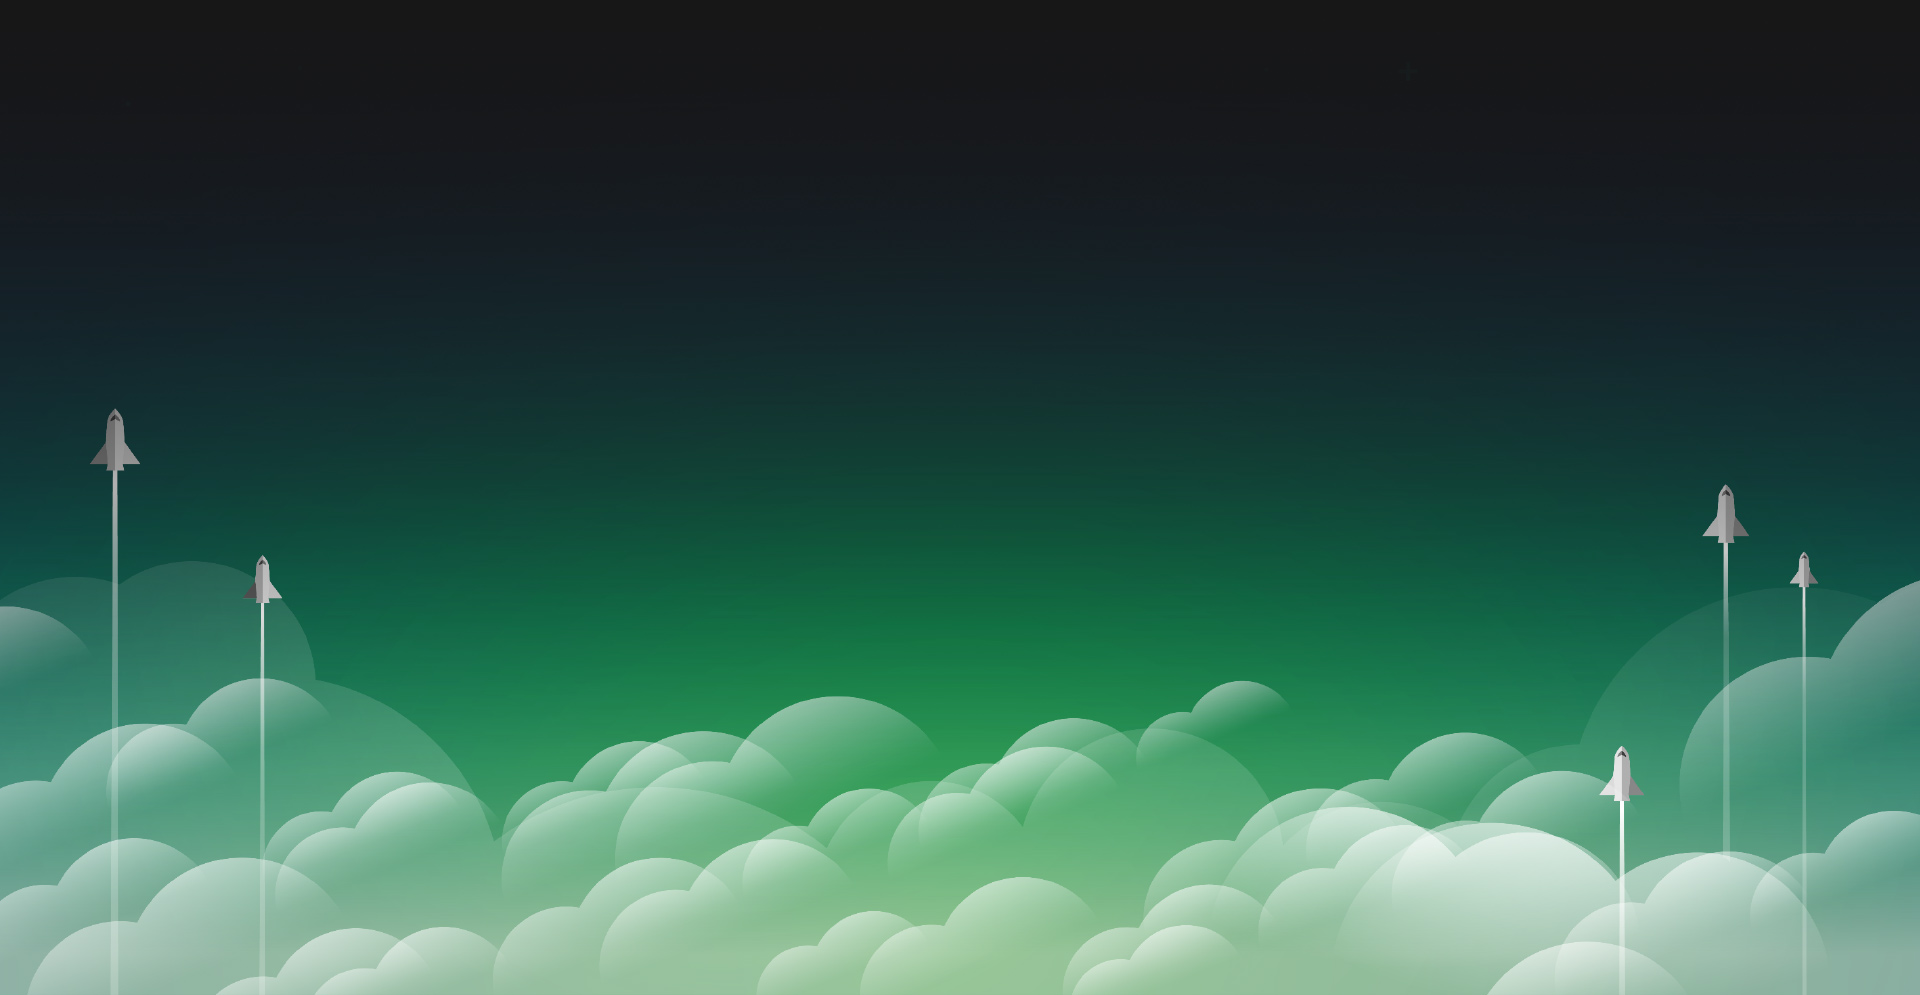 Several rocket ships taking flying skyward through green clouds